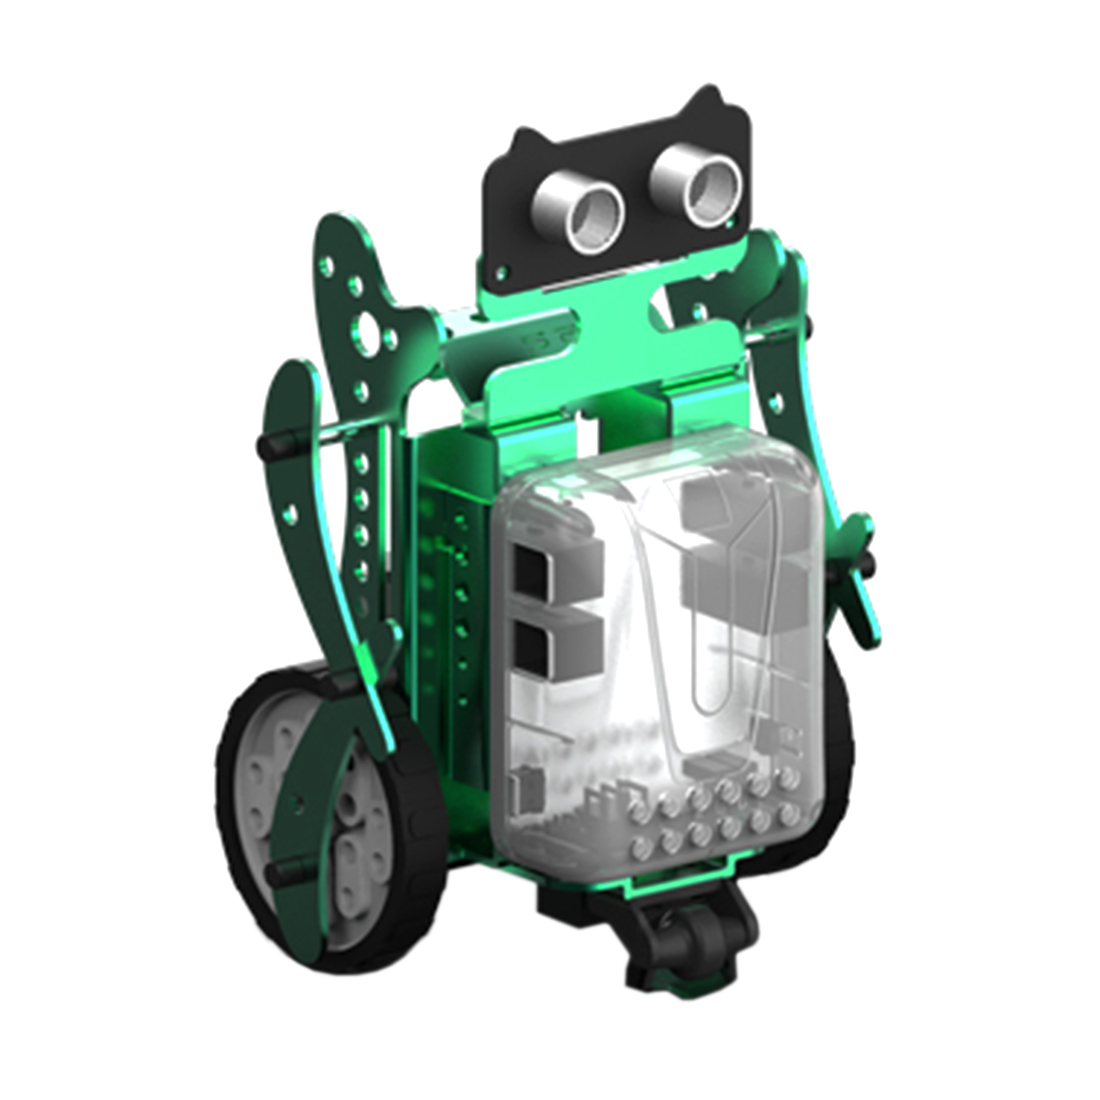 3-In-1 DIY Neo Programming Scratch Intelligent Obstacle Avoidance Car Robot Kit Brain-Training Toy For Children Kids - Green Red